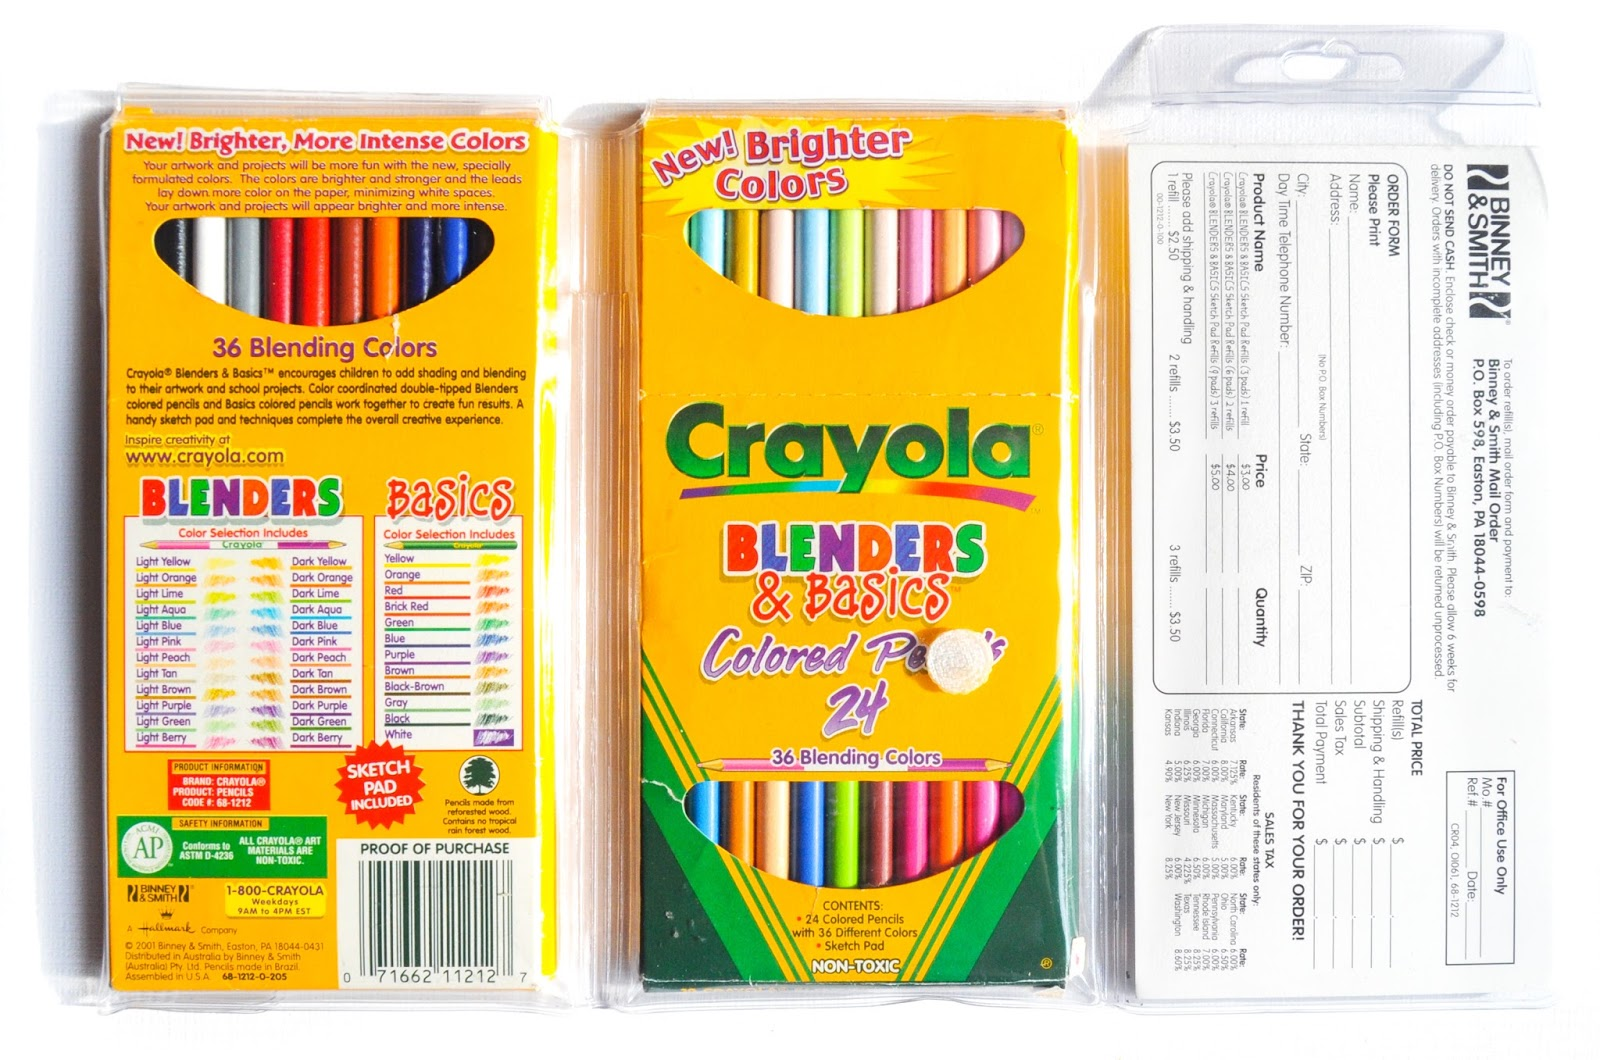 Crayola Blenders And Basics Colored Pencils What S Inside